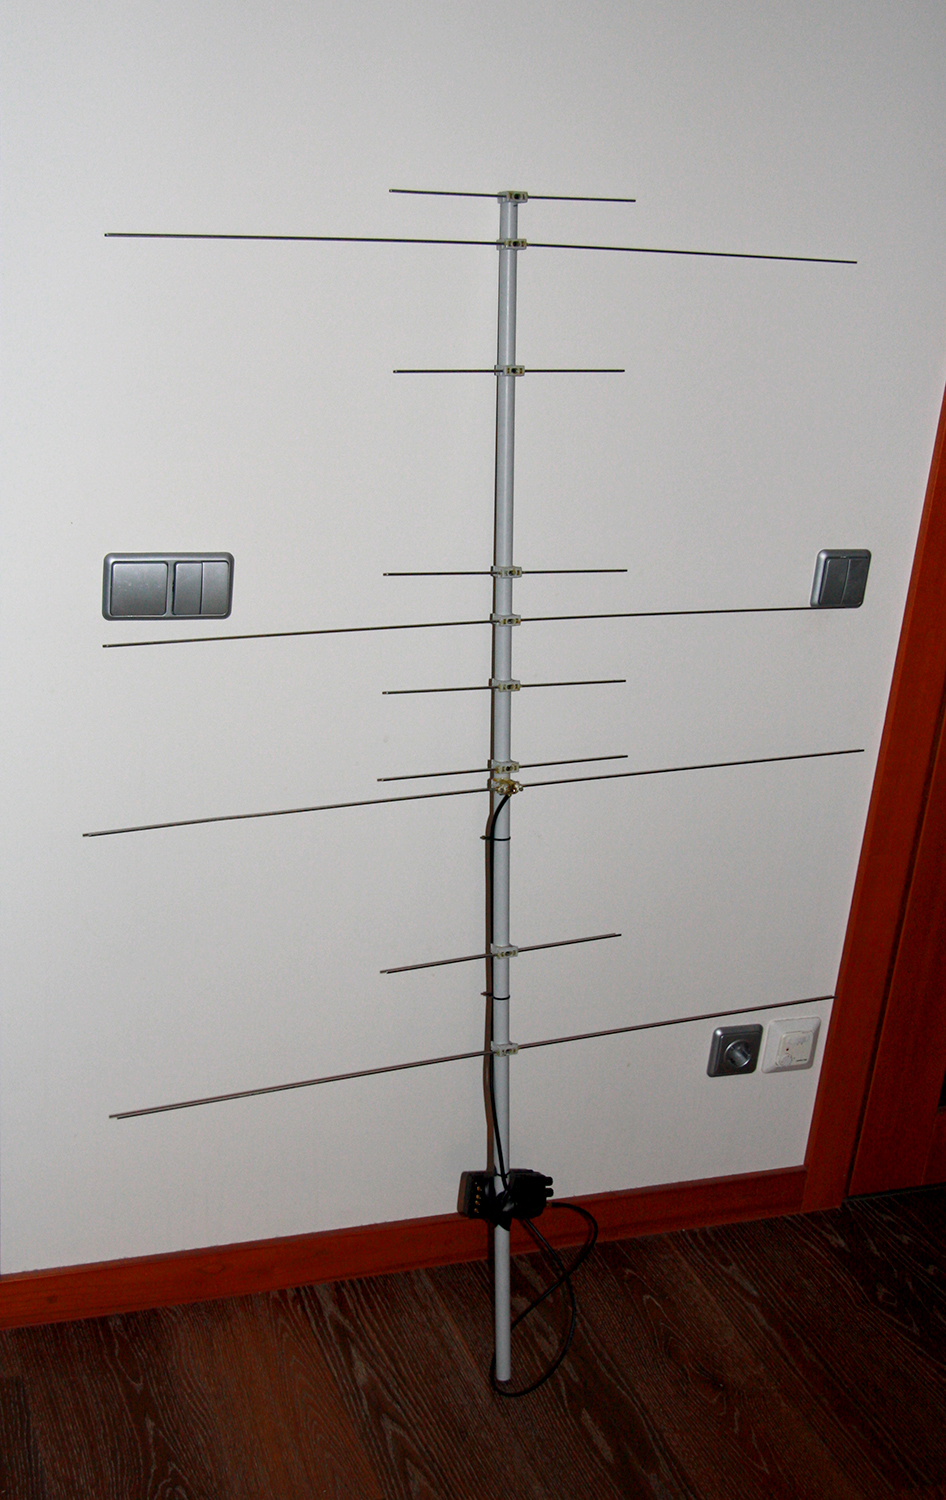 VHF UHF YAGI handheld antenna for satellite